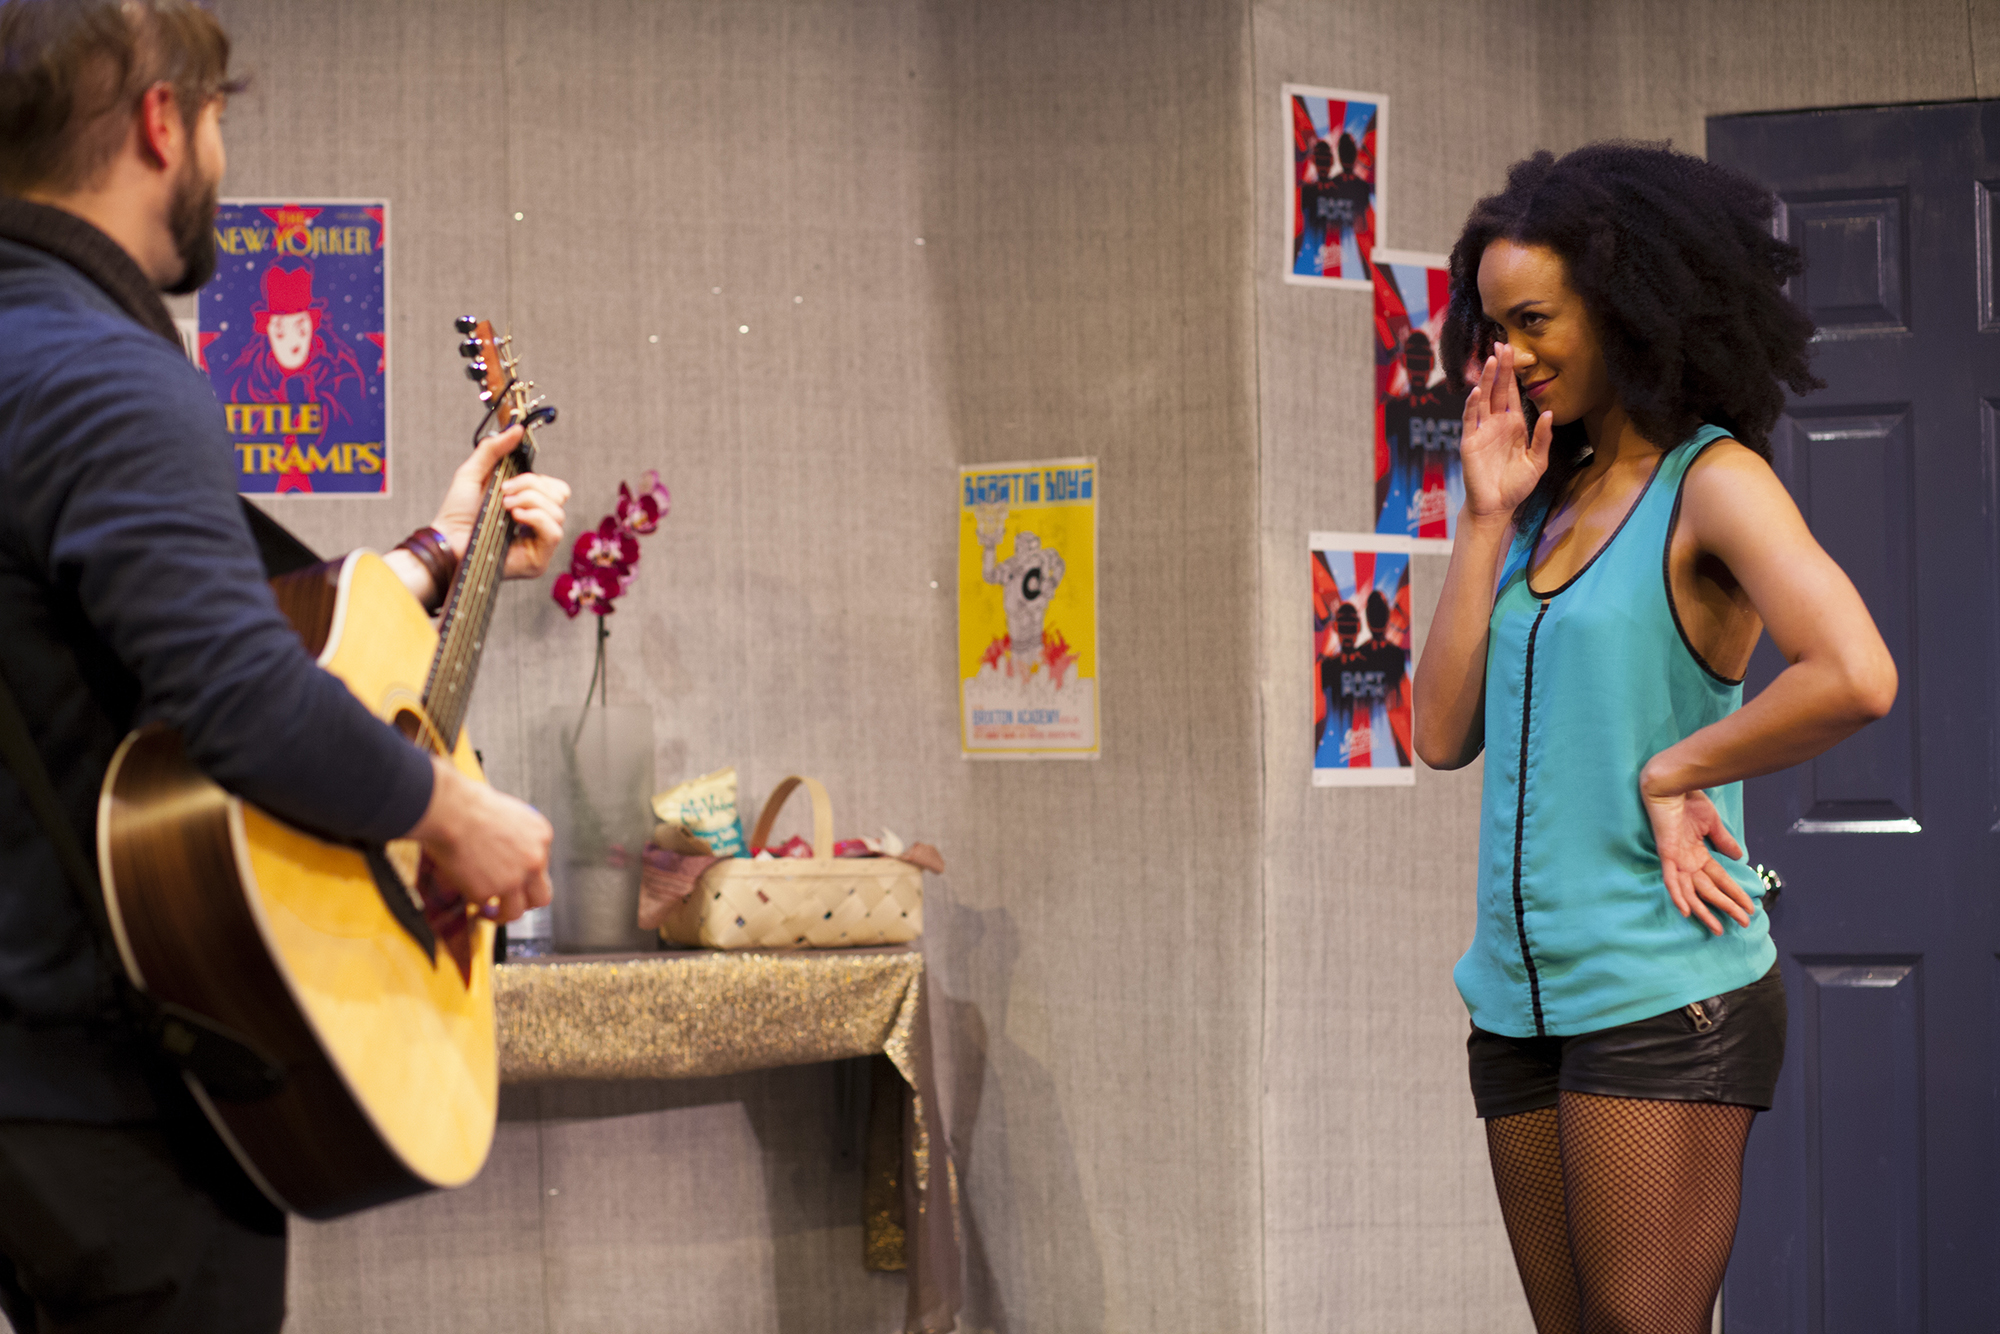 Production image of James Pearce (James Parenti) and Monique Jackson (Monique St. Cyr)in  POPTART! when produced by  Girl Just Died at TADA! Theatre in Winter 2015.Photograph by Trish Phelps.